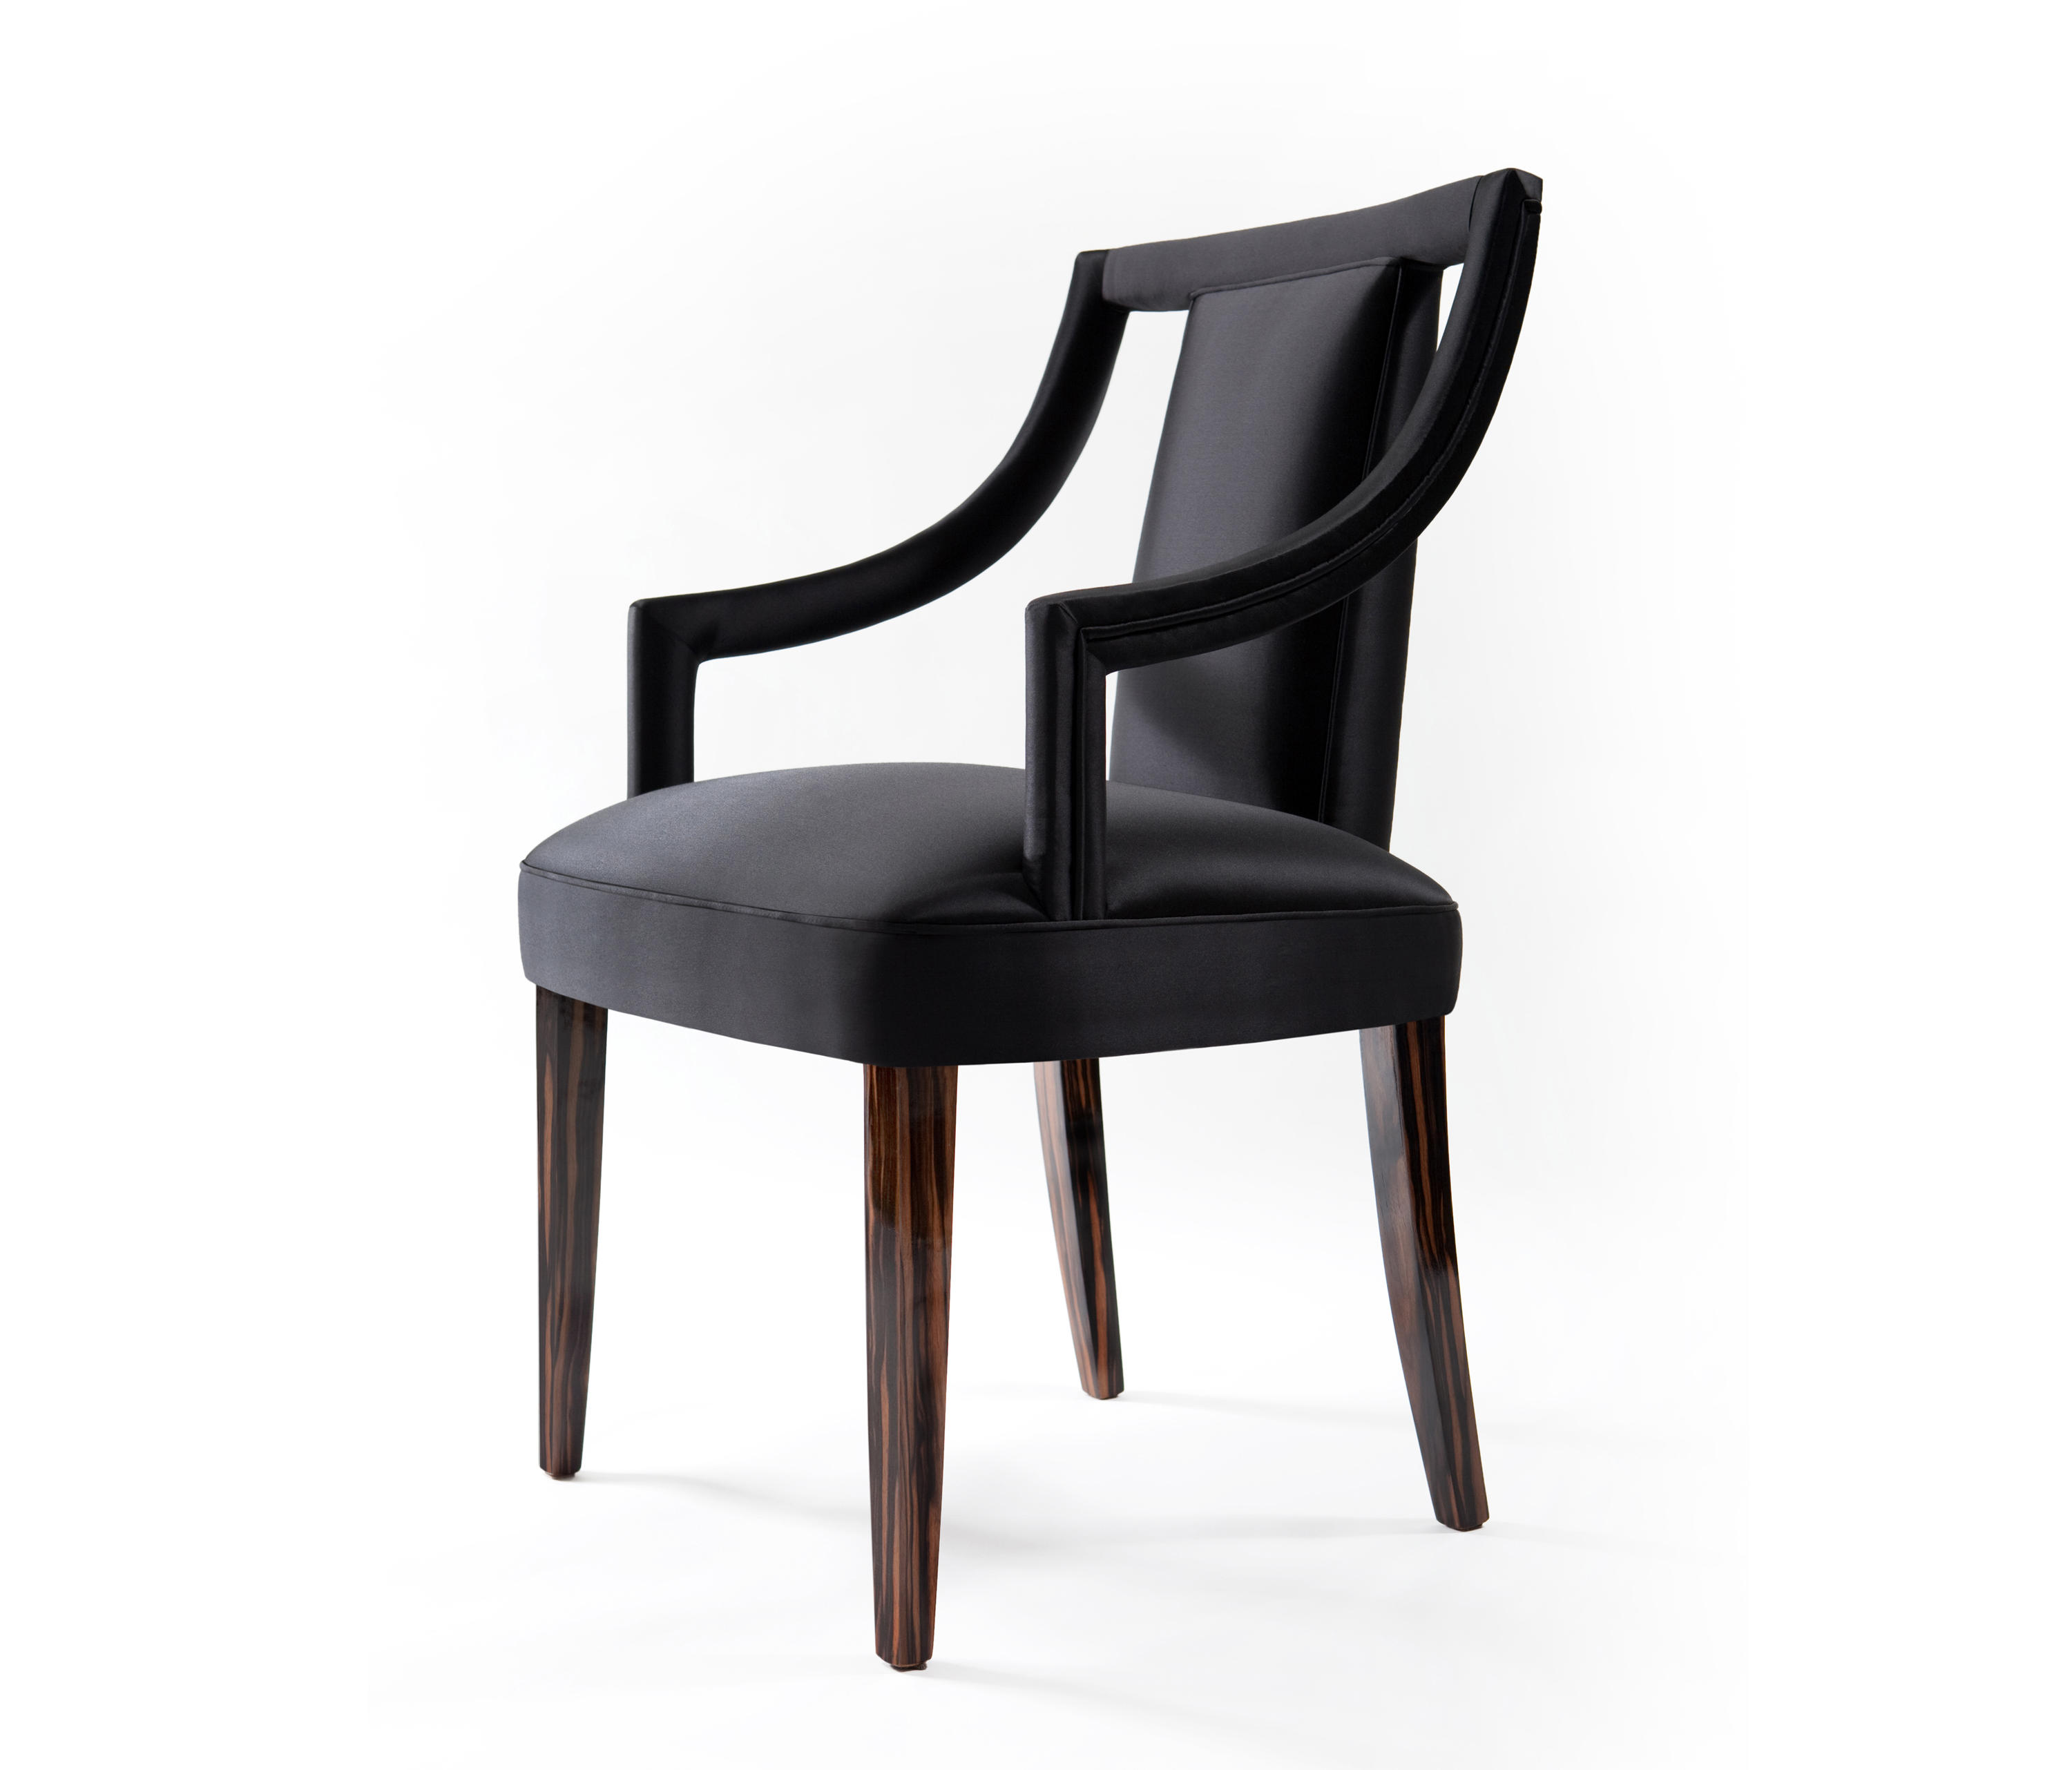 Restaurant Chairs Corset Chair Restaurant Chairs From Munna Architonic